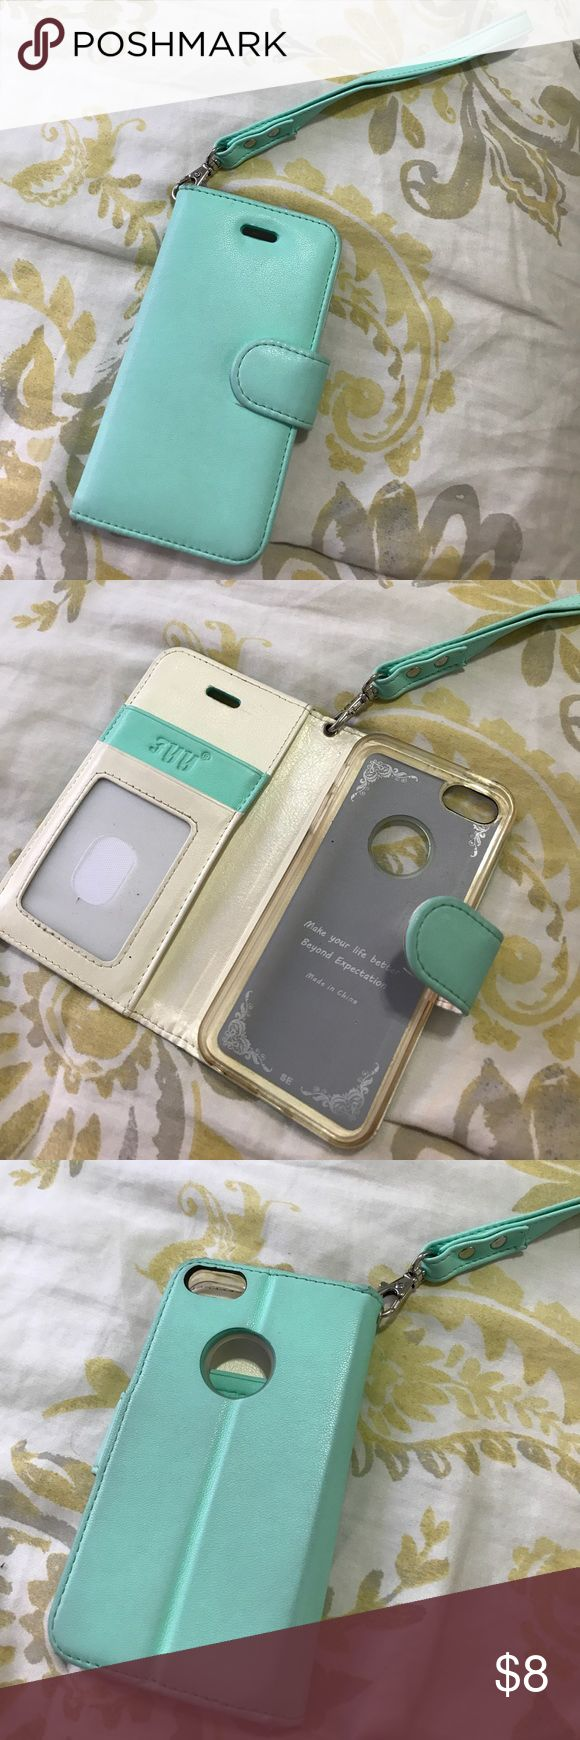 iPhone 5SE Wristlet wallet case Mint color, I only had this case for a month, then I upgraded my phone and I no longer have a use for it. In great condition! Has minor rips as shown on picture. Open to offers. It folds so you can binge watch on Netflix or another app. Accessories Phone Cases